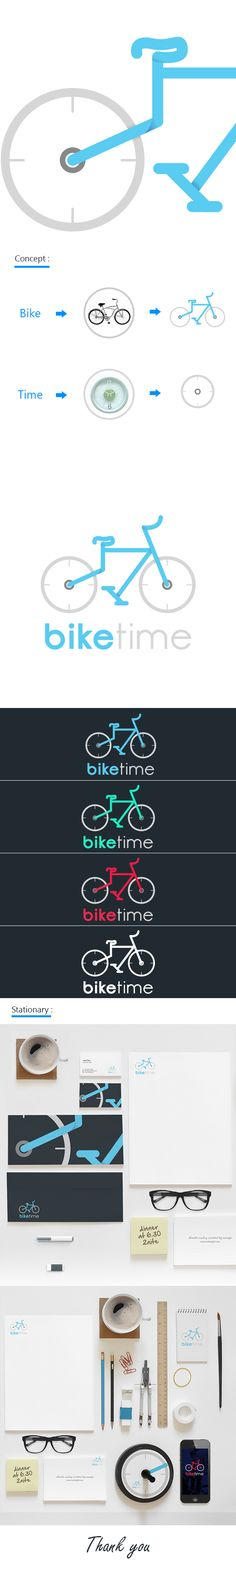 Biketime Logo on Behance